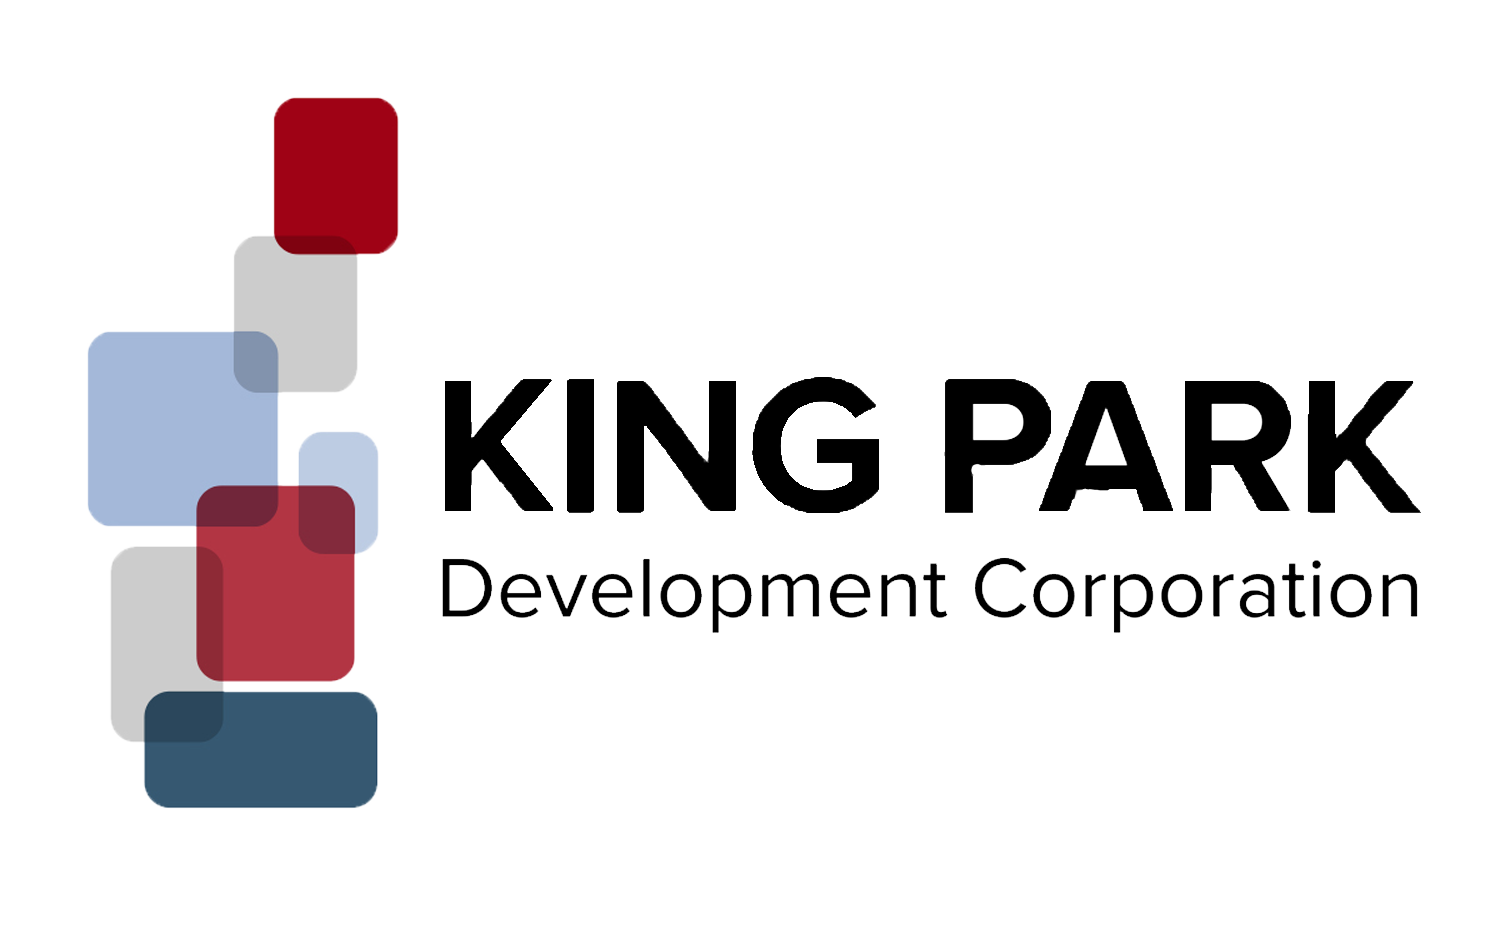 Image of the logo for King Park Development Corporation